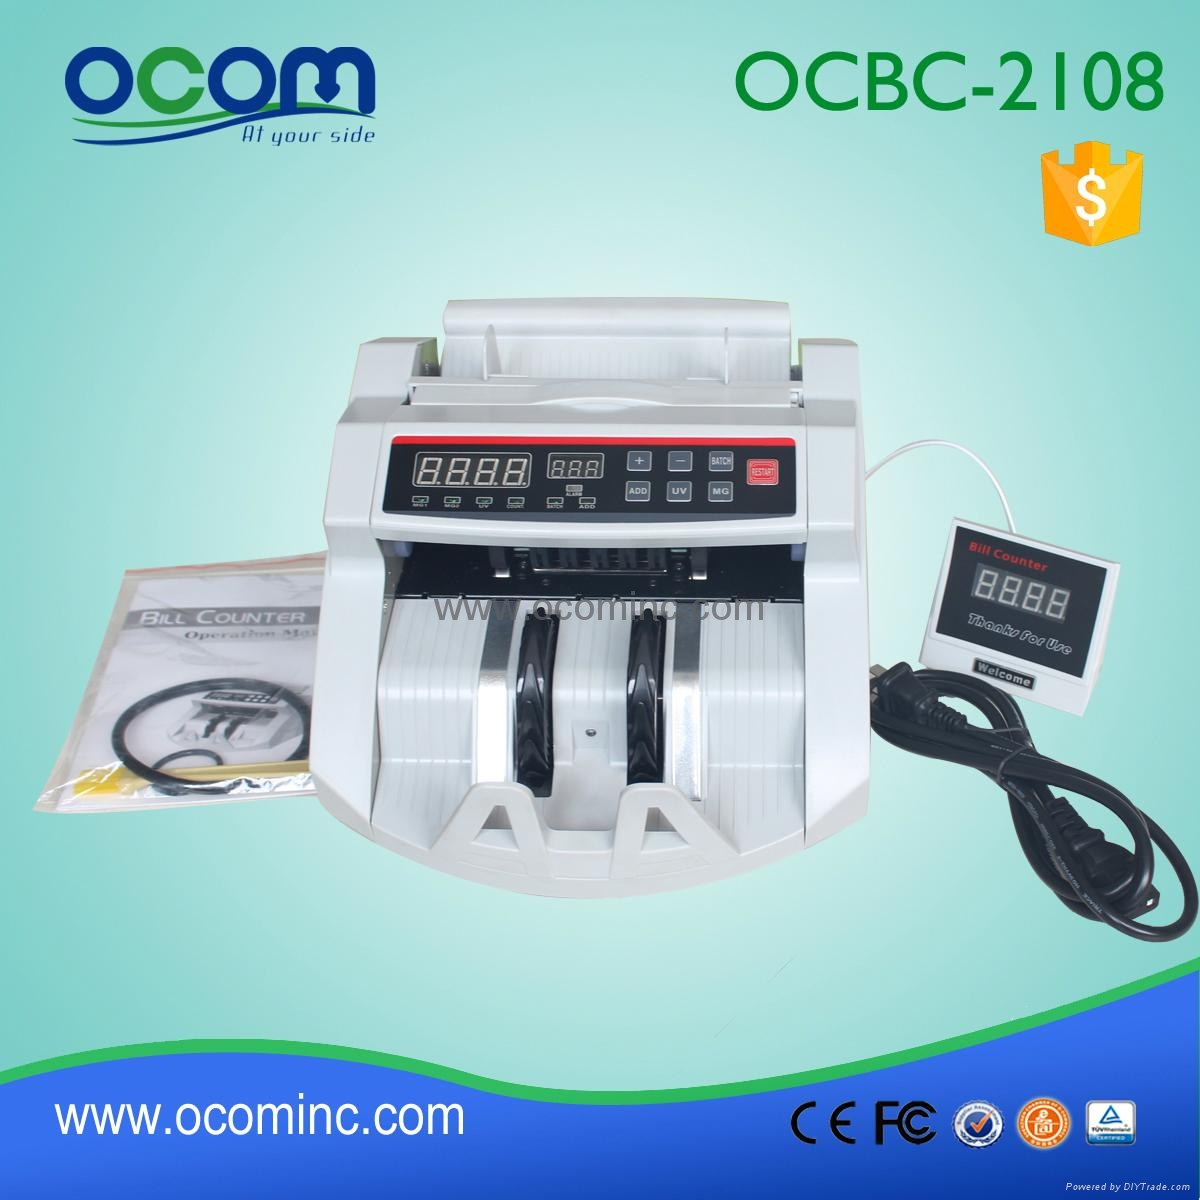 BC-2108: hot selling cash counter bill banknote for POS 4